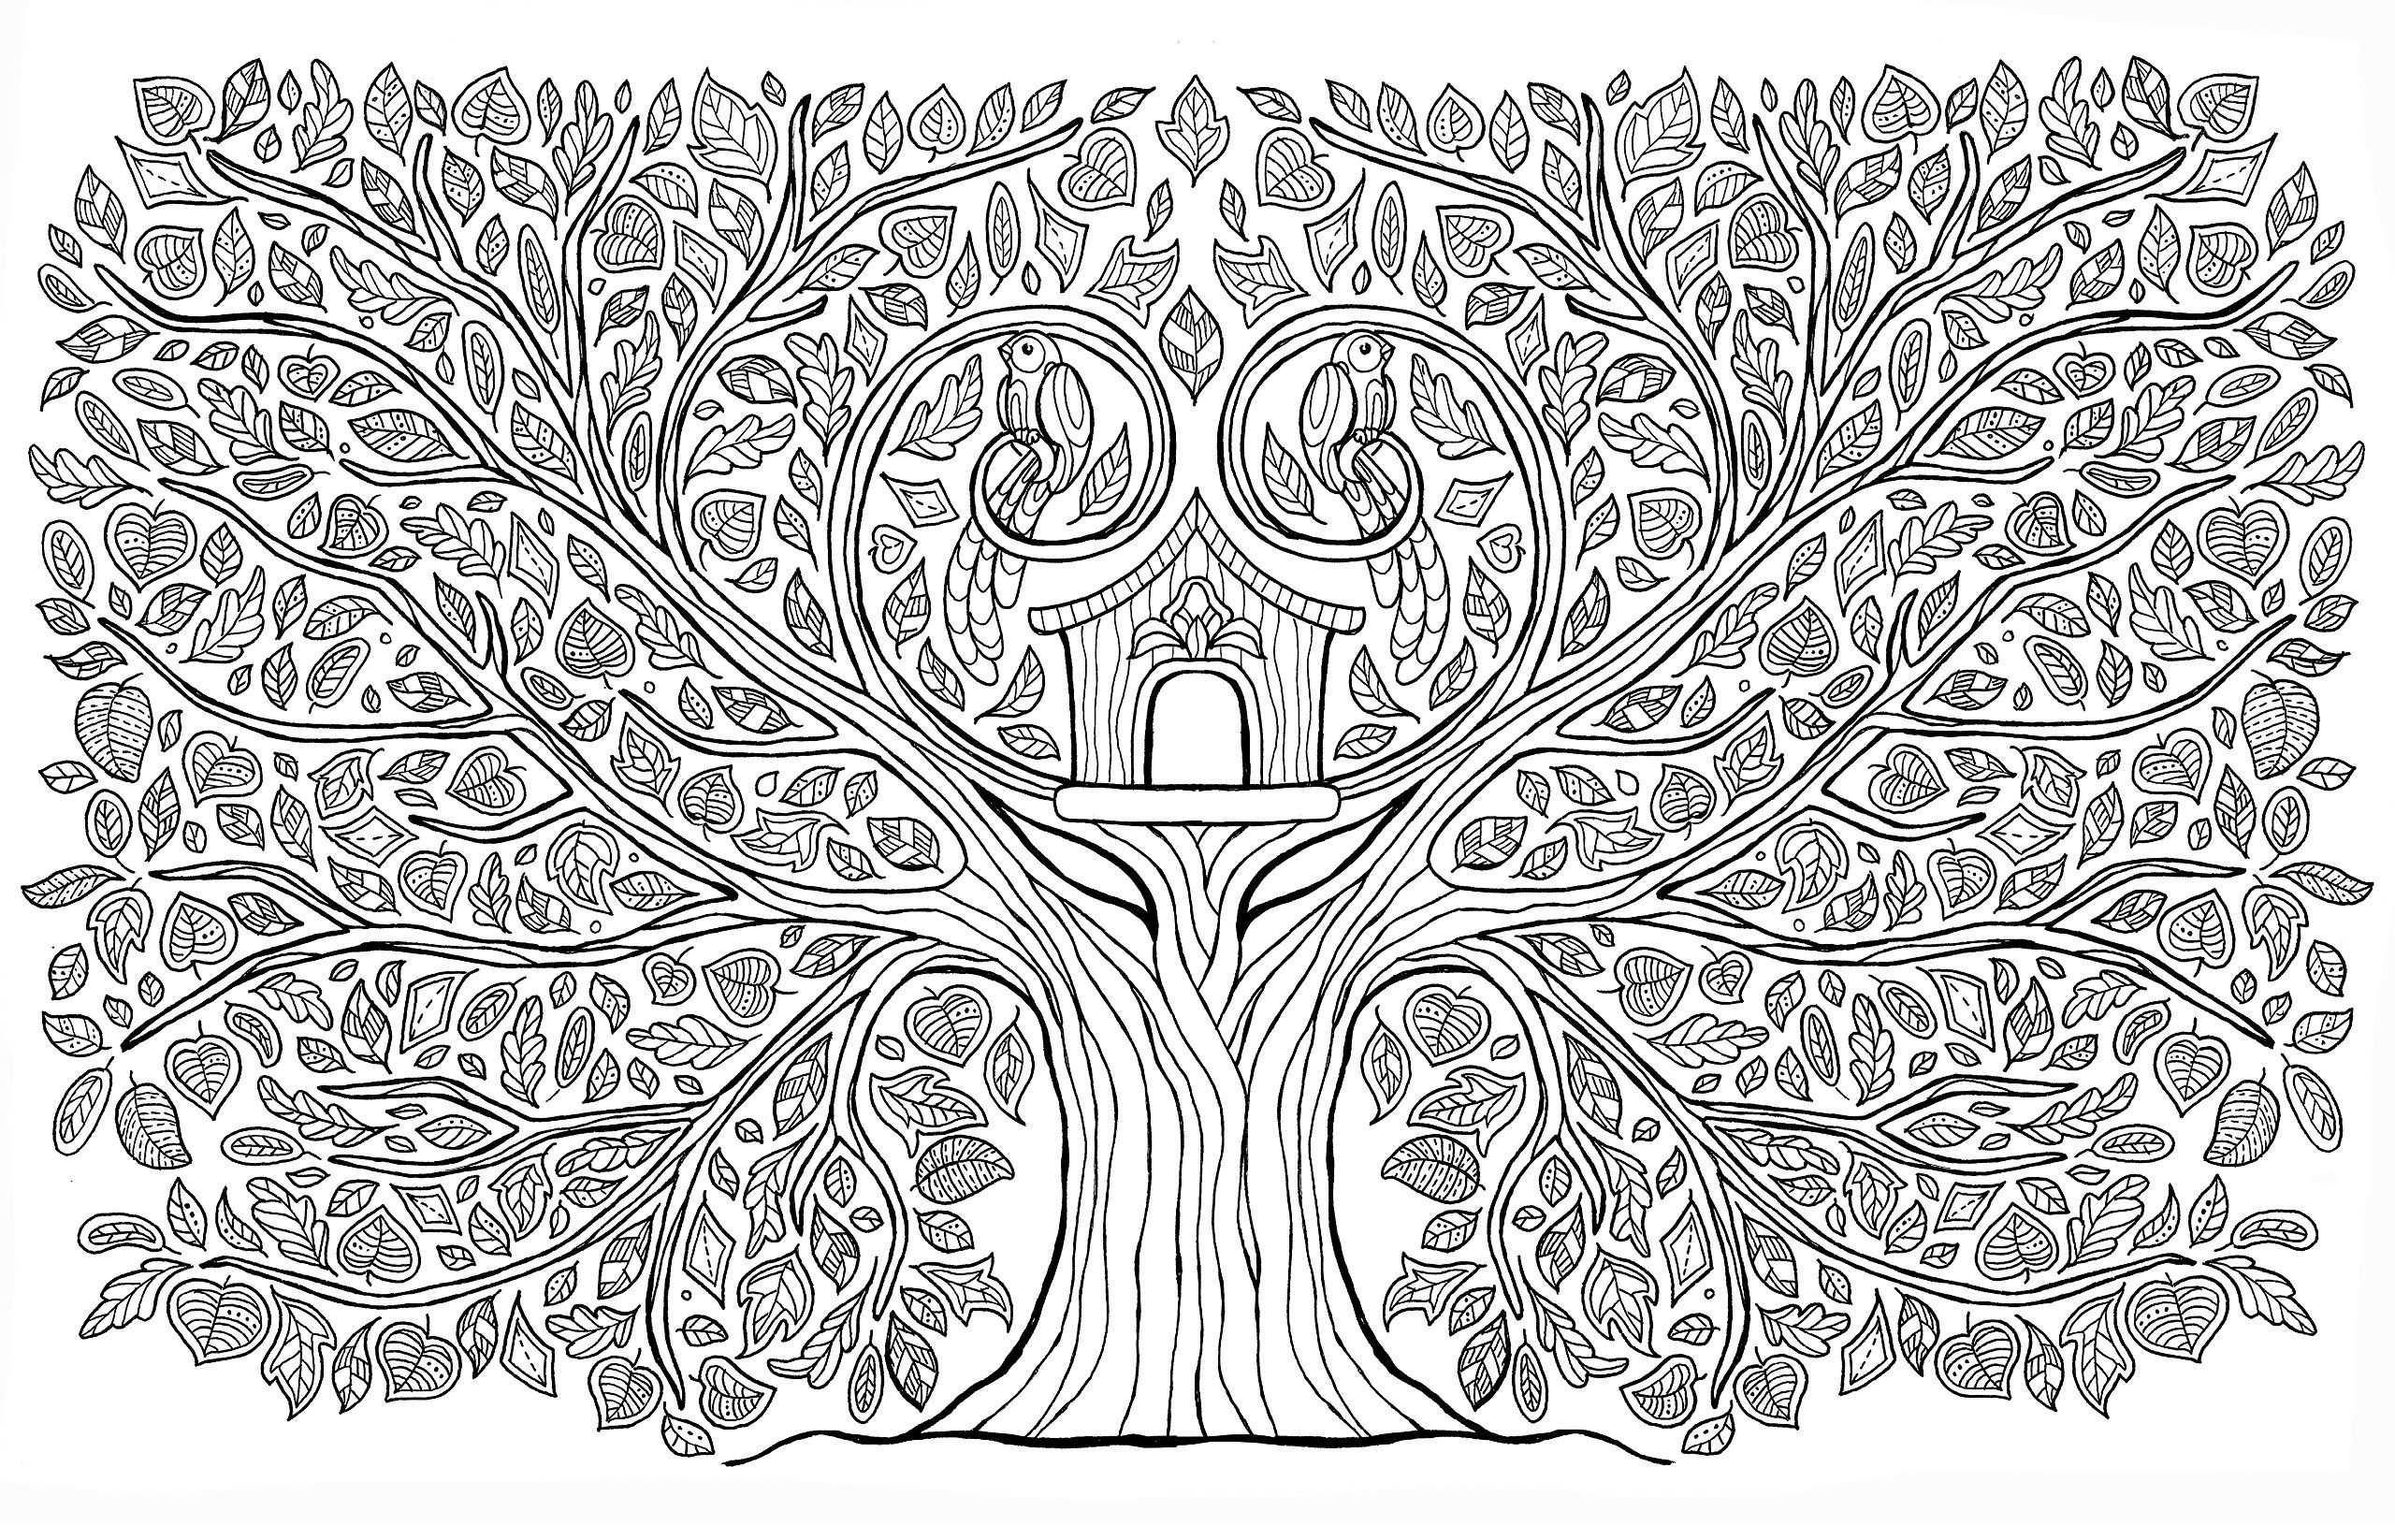 150 coloriages pour se détendre et s'évader  Coffret en 3 volumes  Oiseaux de paradis ; Jardin des délices ; Arbres de vie (1CD audio) Amazon co uk Marica Zottino, Rustica 9782815306126 Books is part of Tree coloring page -